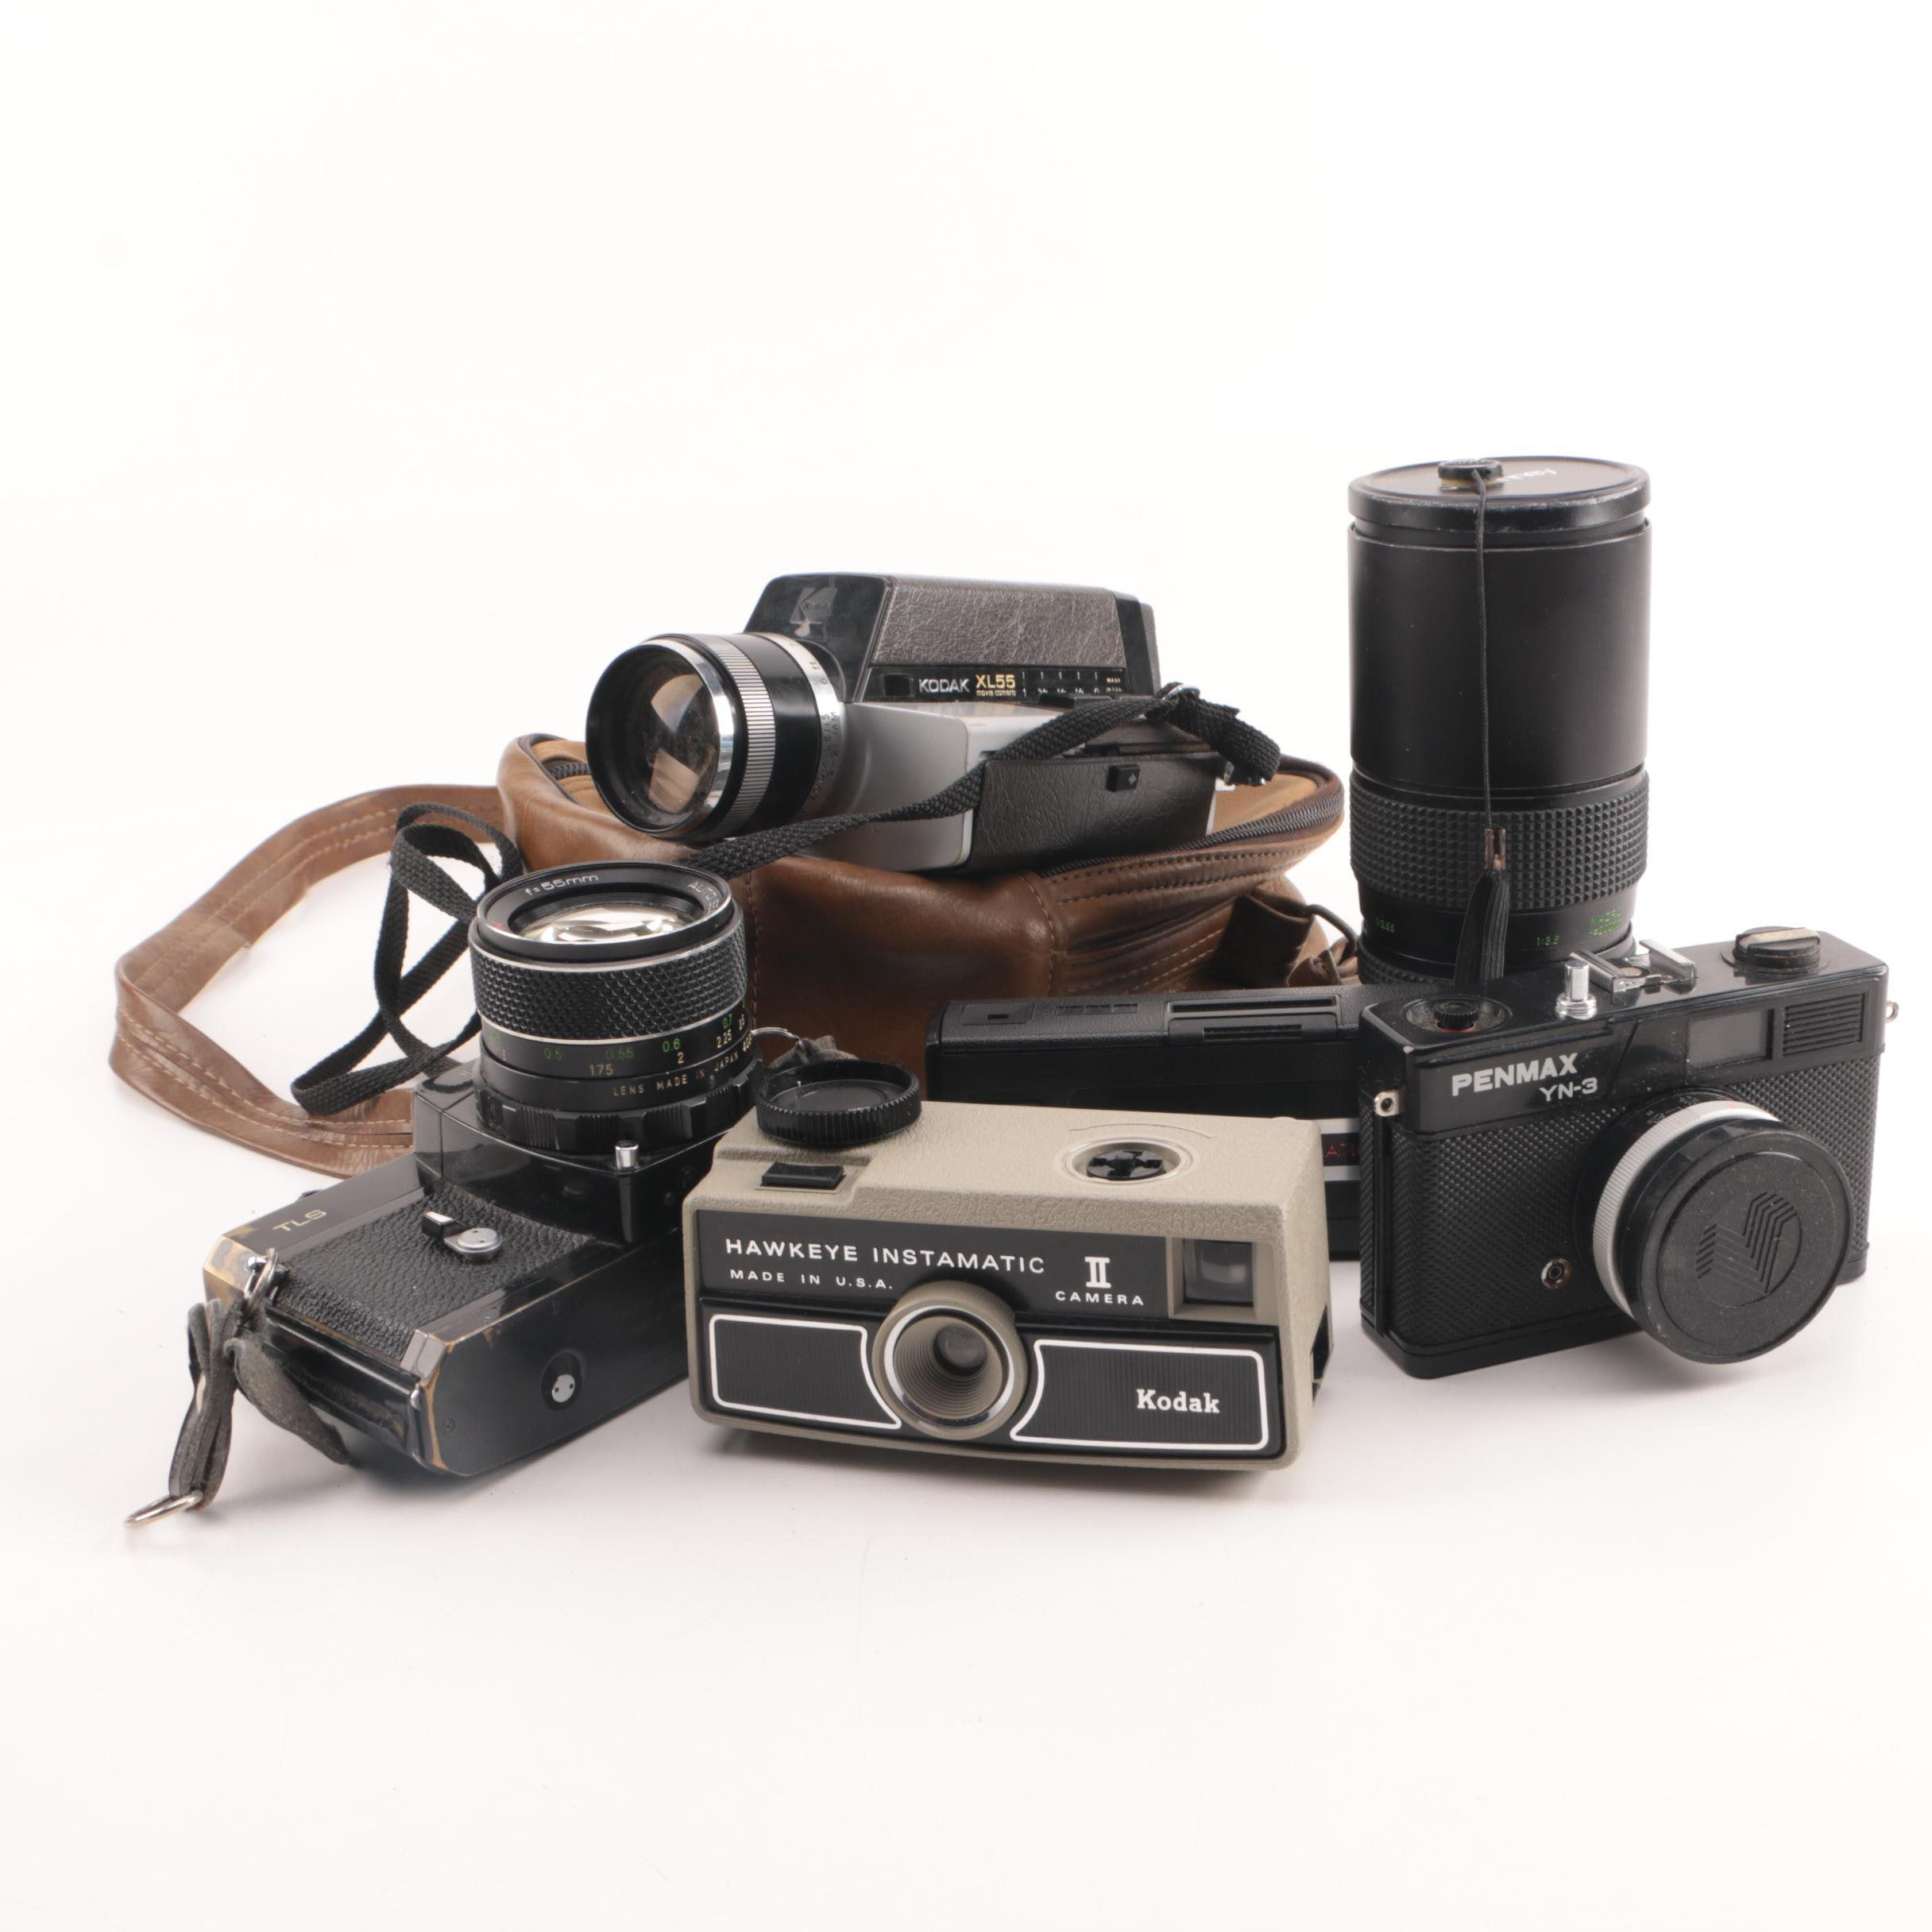 Vintage Kodak, Penmax, and Sears Cameras with Accessories